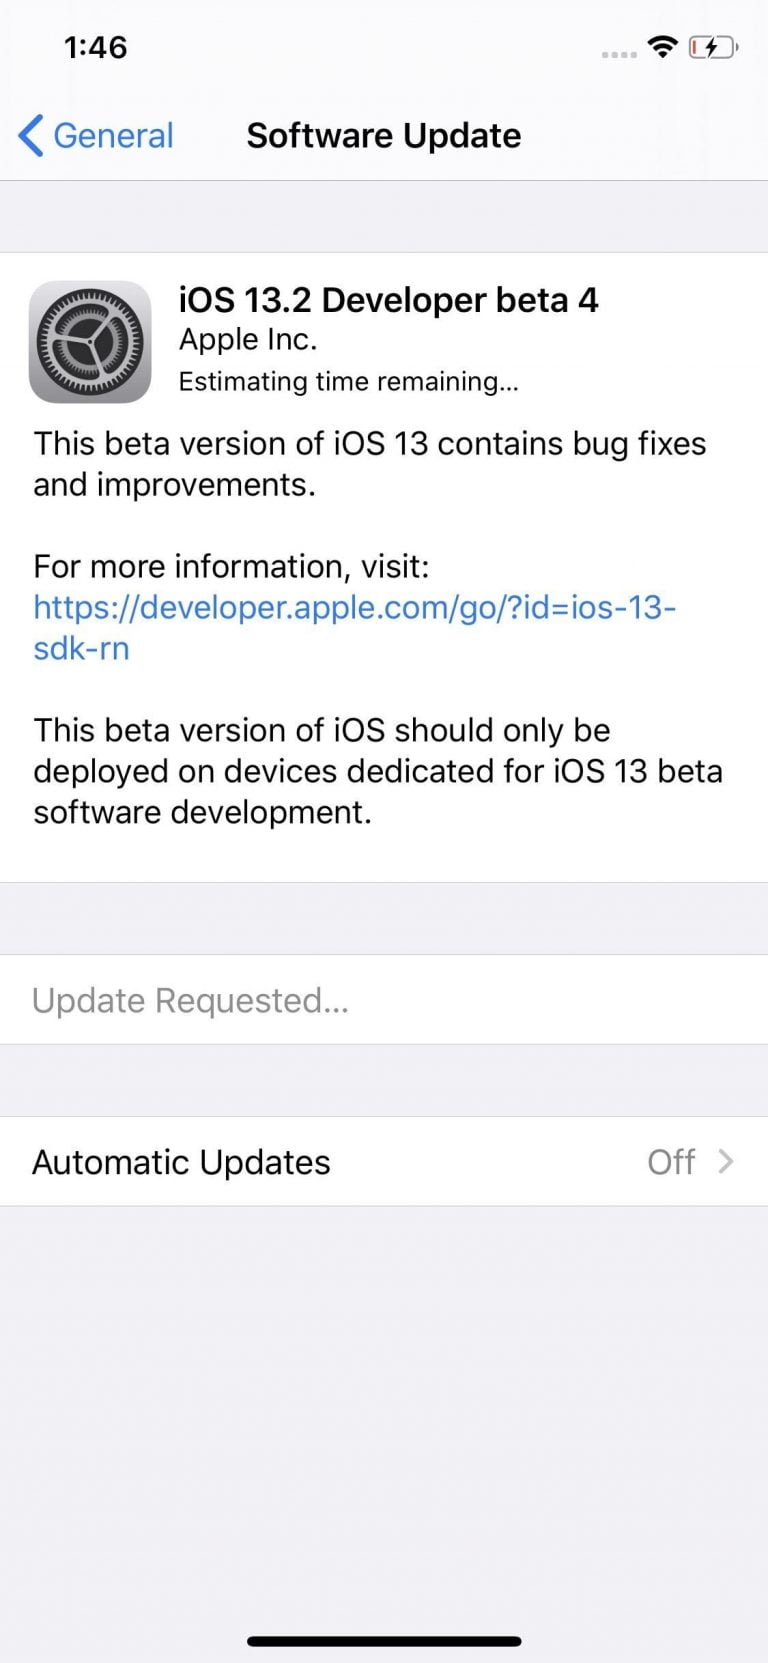 iOS 11.1 beta 2 now available What's new? Emojis and the solution to many bugs